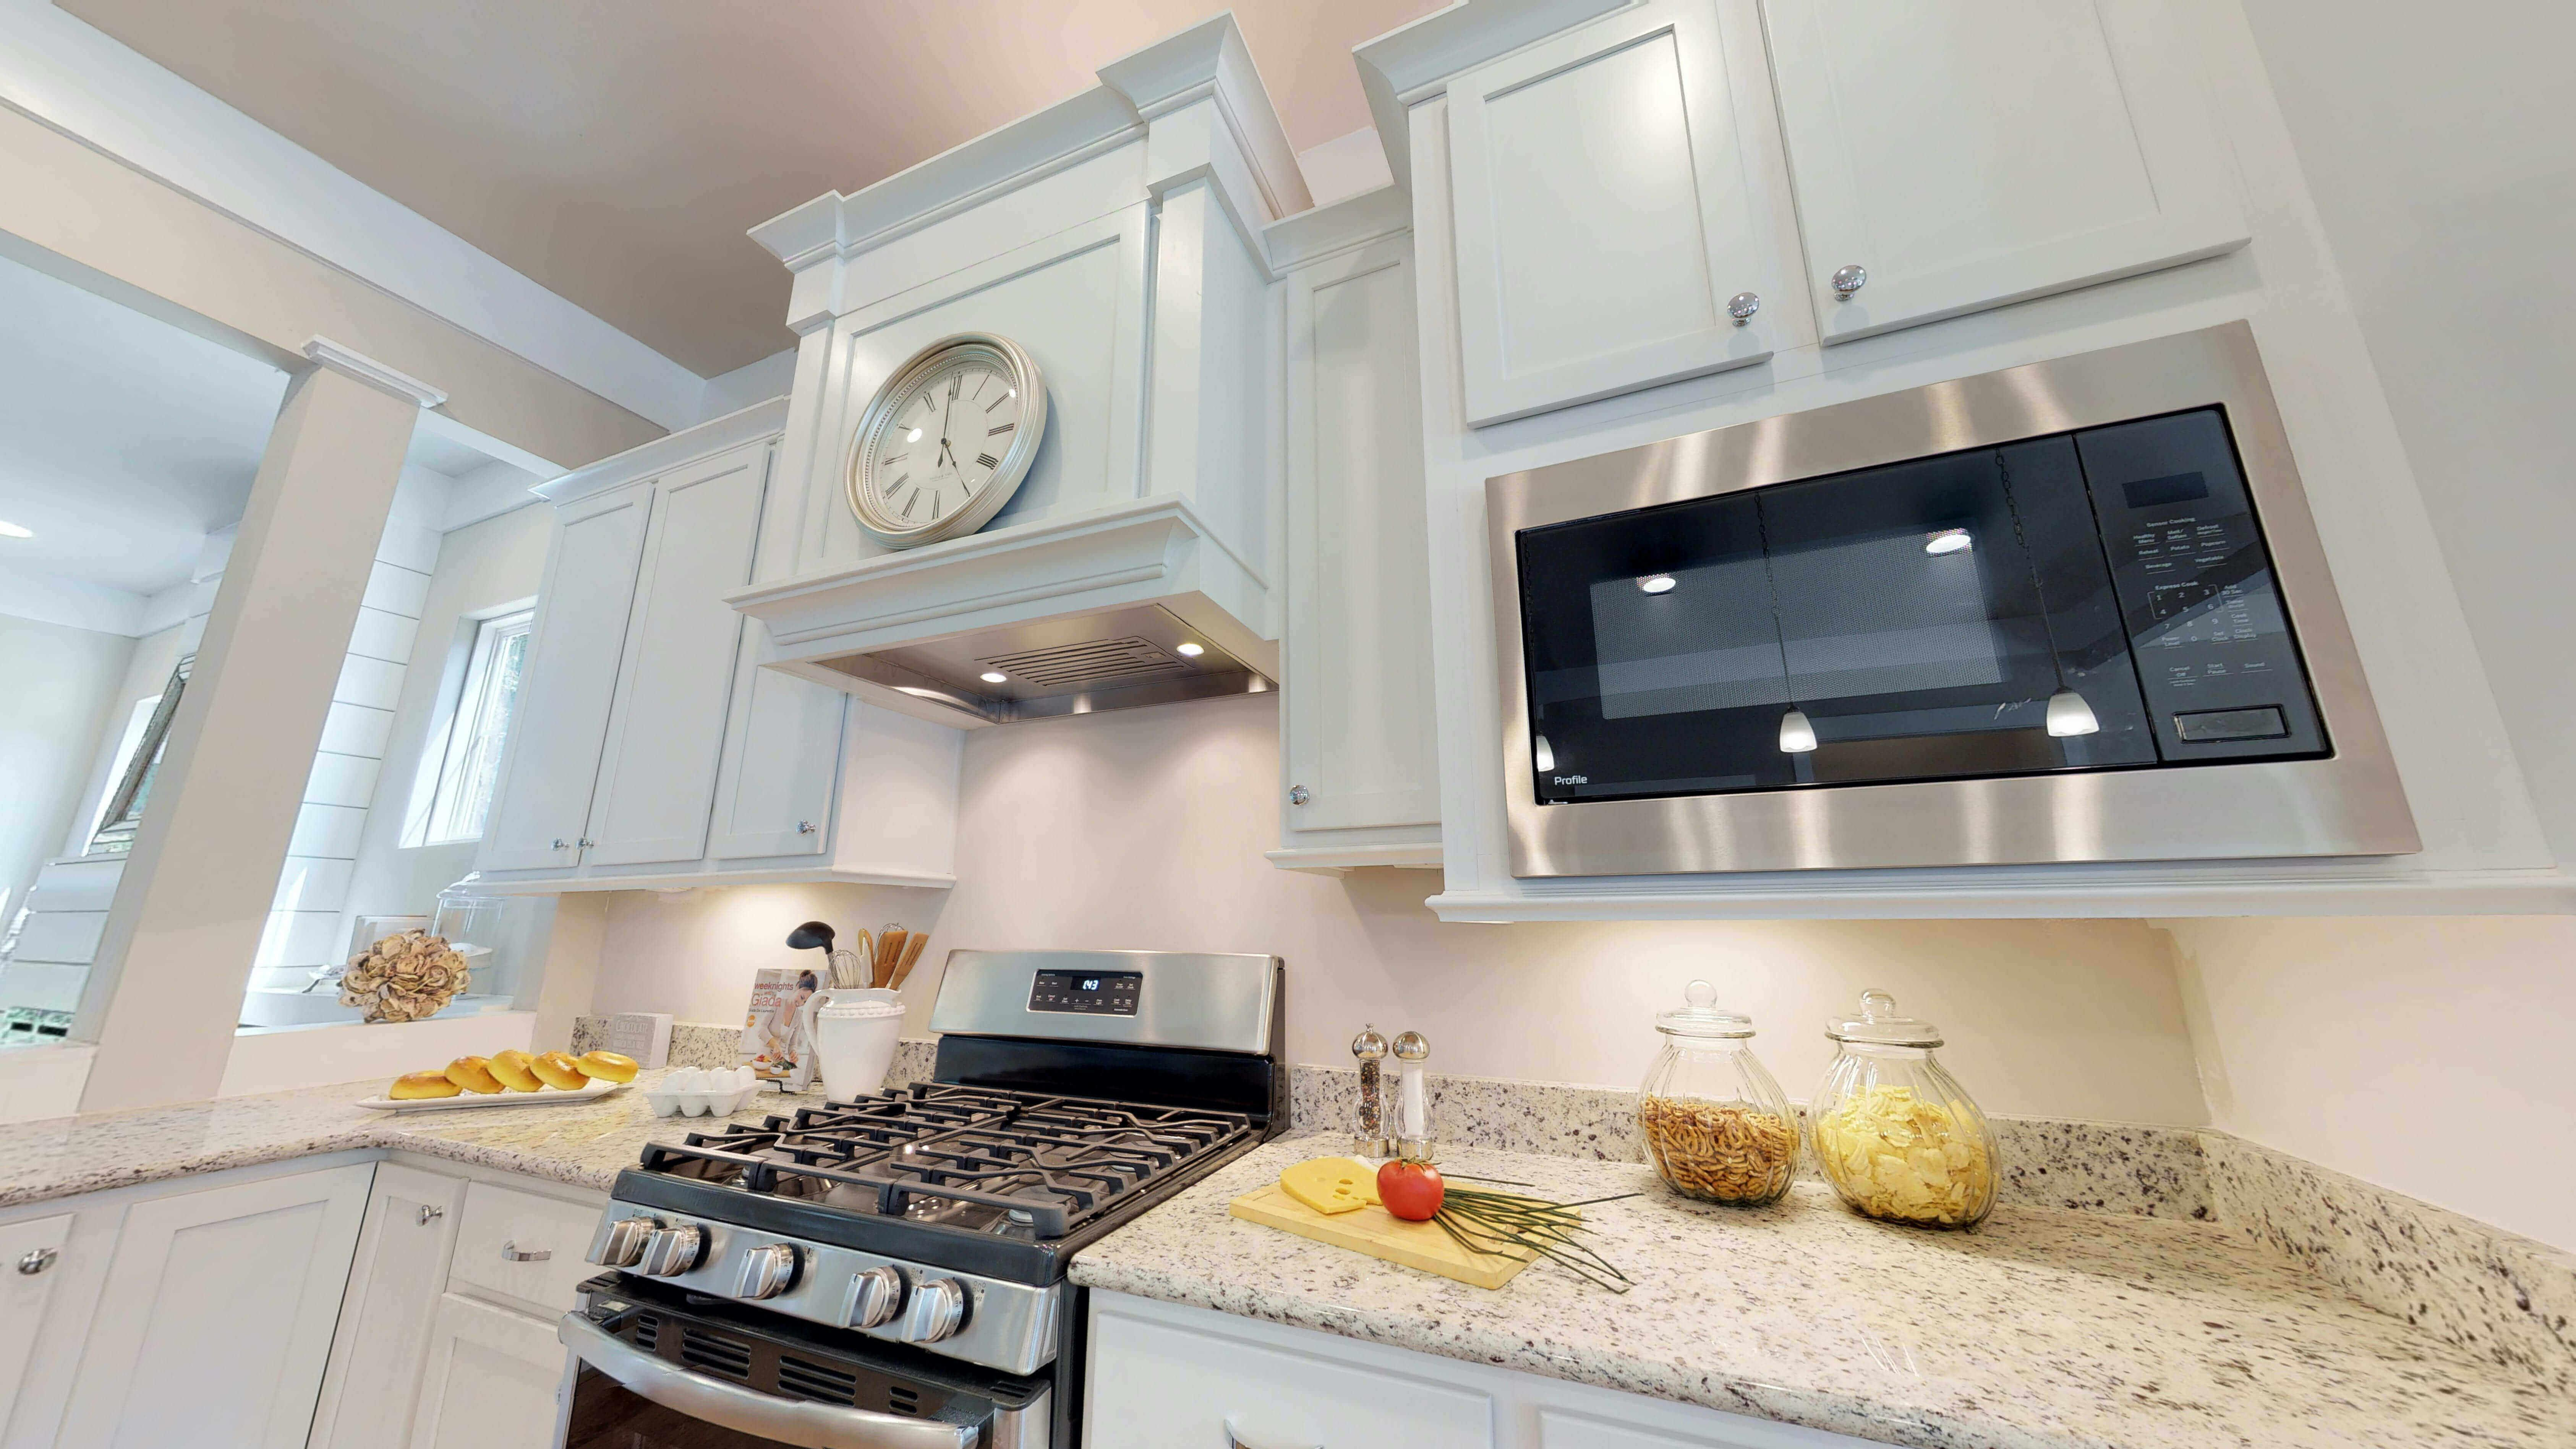 Kitchen featured in the Cape Charles By Stephen Alexander Homes in Outer Banks, NC